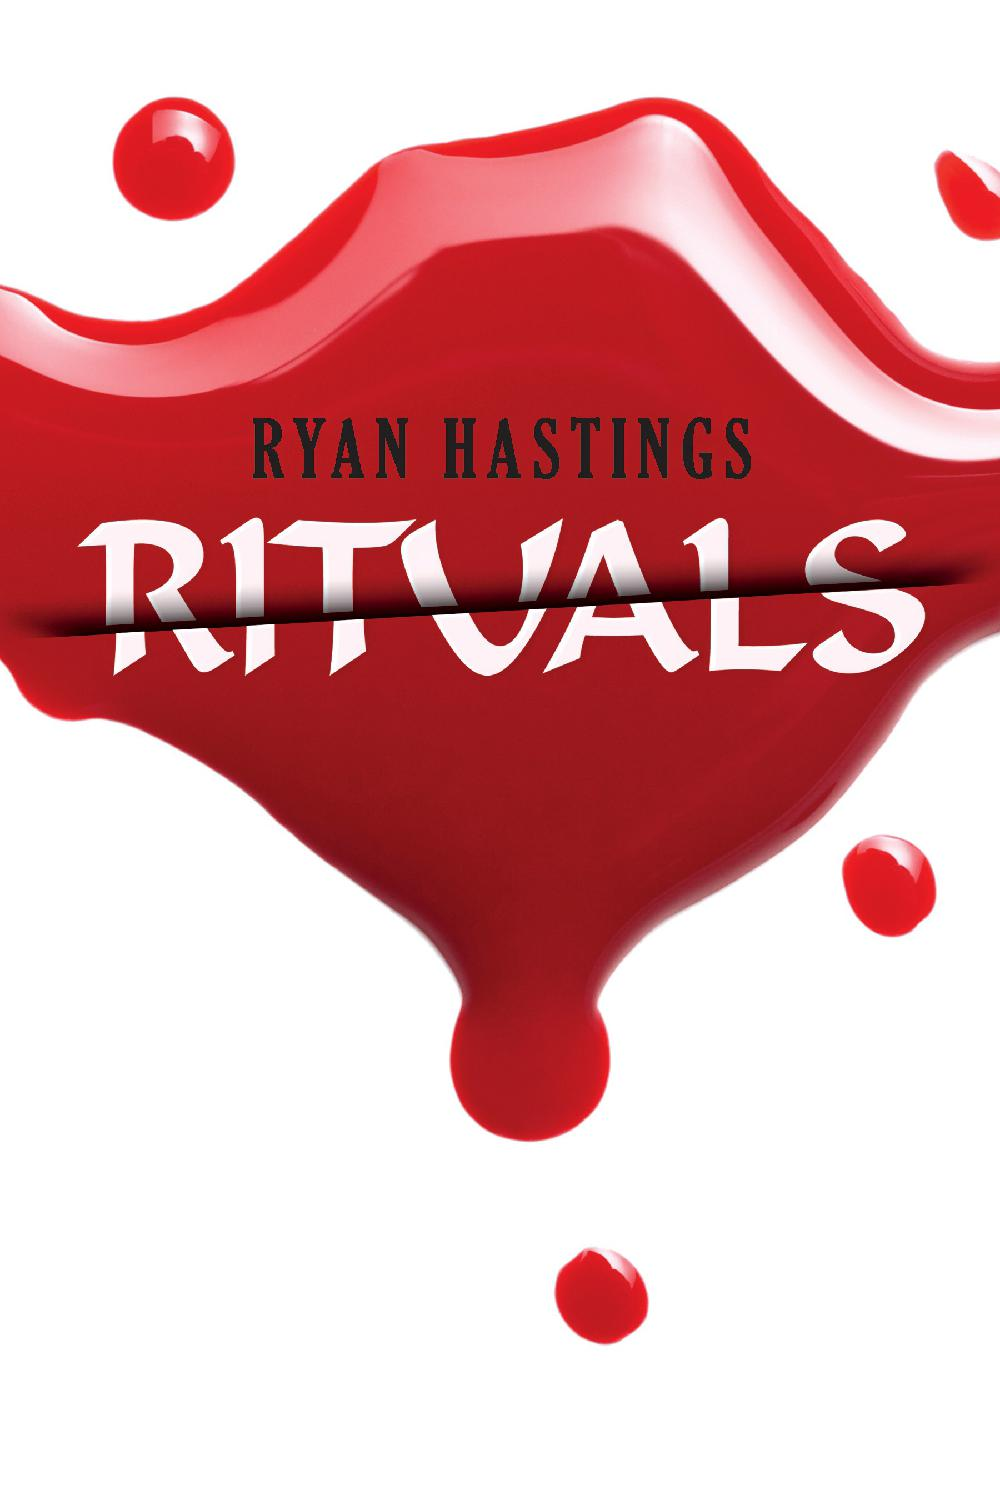 Rituals by Ryan Hastings's Book Image